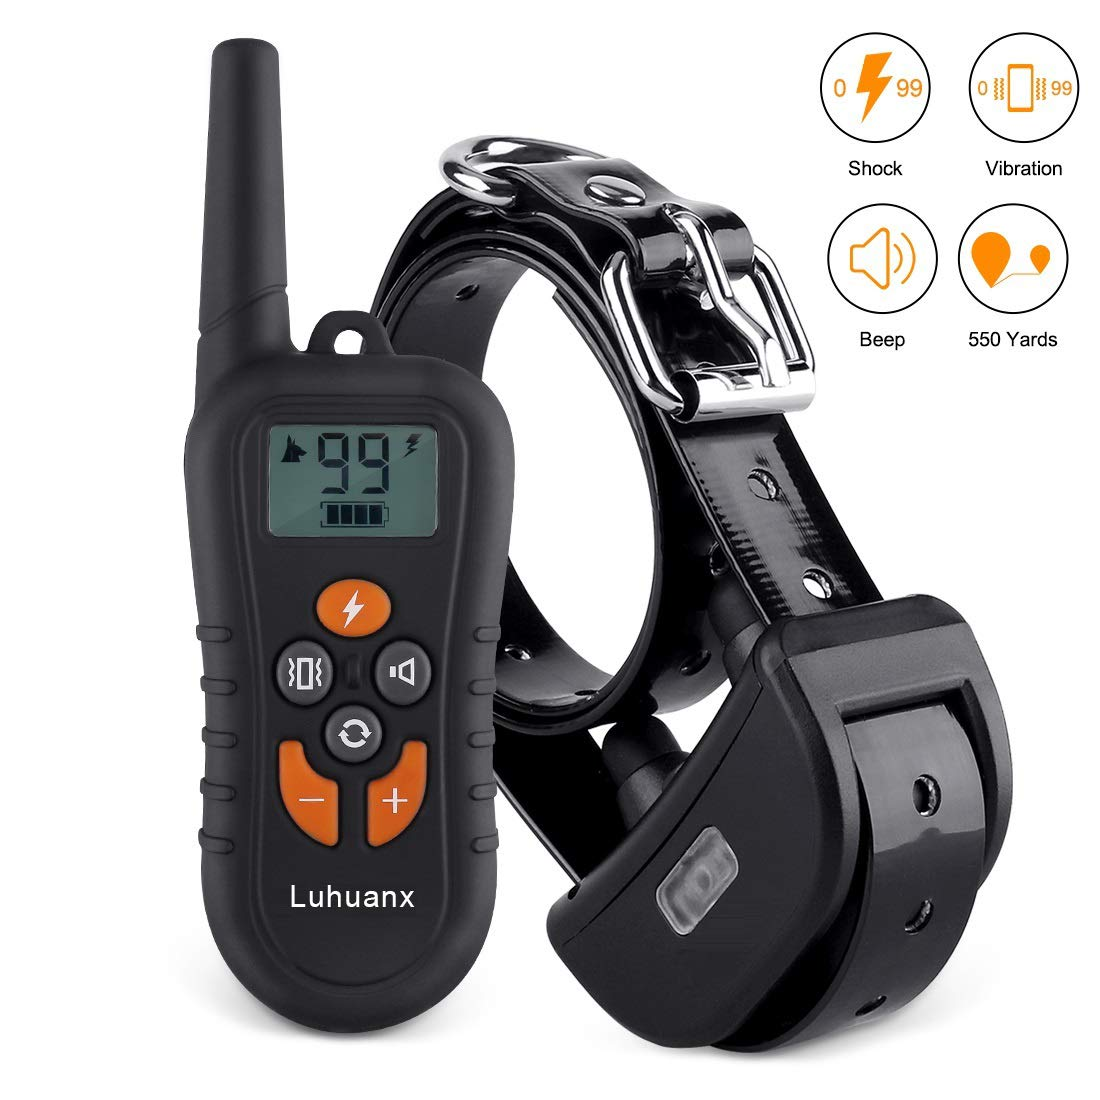 orange Luhuanx Dog Training Collar with 500 Yards Remote Control Separated Mode Buttons Dog Shock Collar Night Light Beep Vibration Shock 4 Modes Waterproof Dog Collar for Large Medium Small Dogs